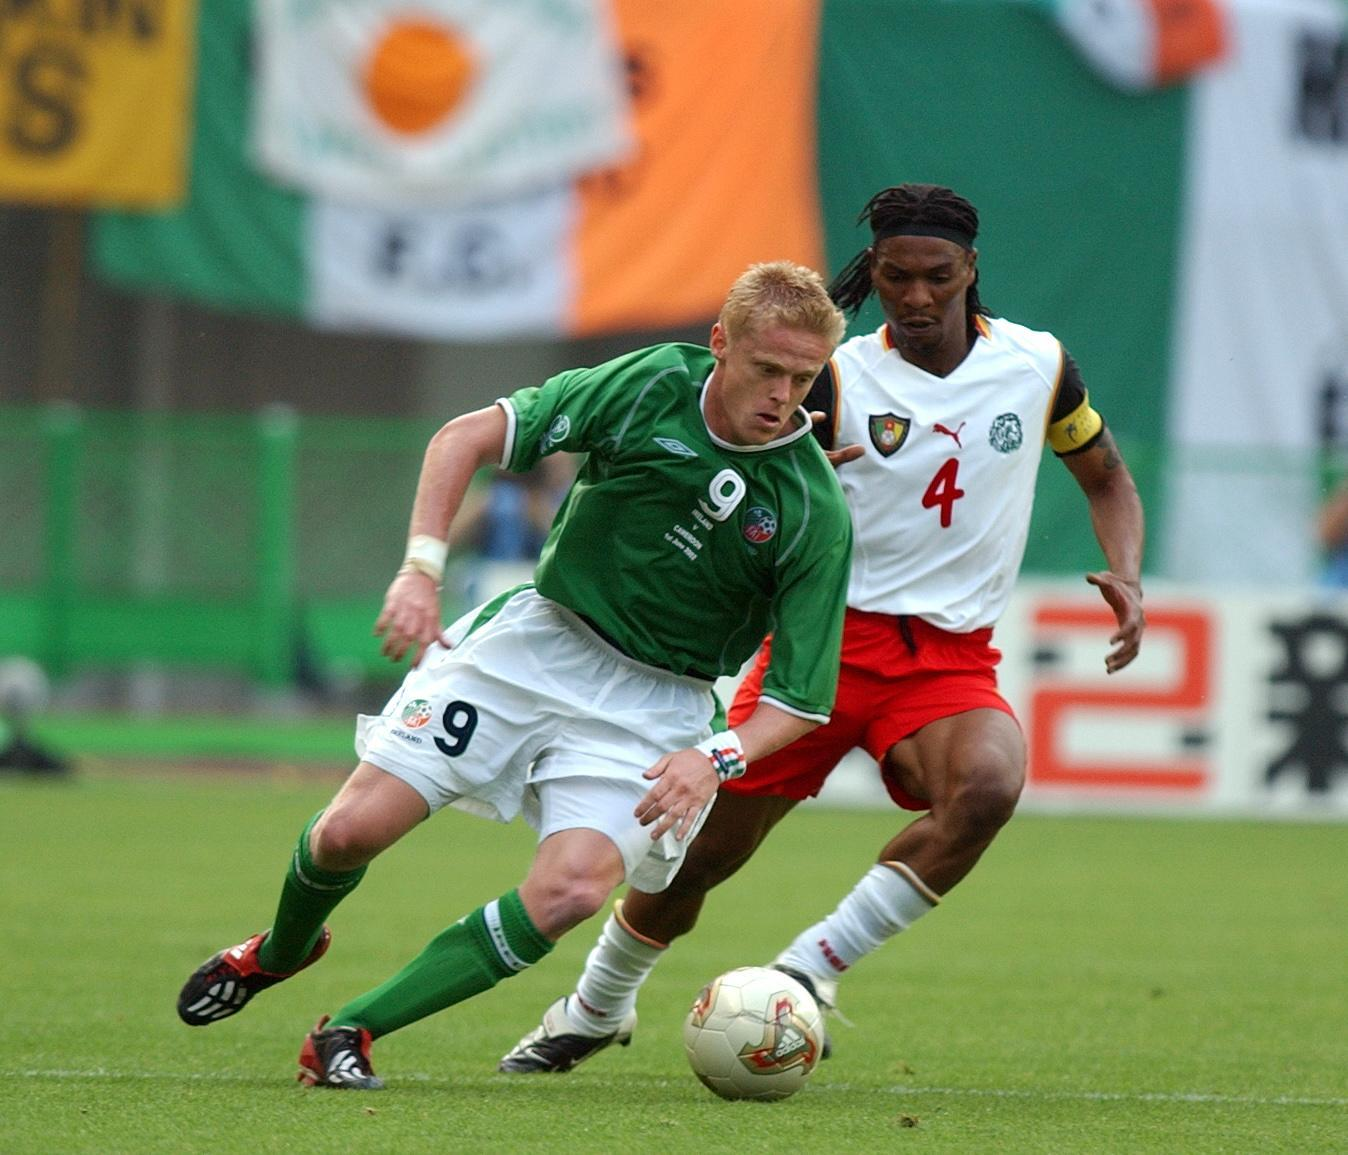 Ireland v Cameroon at the 2002 Fifa World Cup